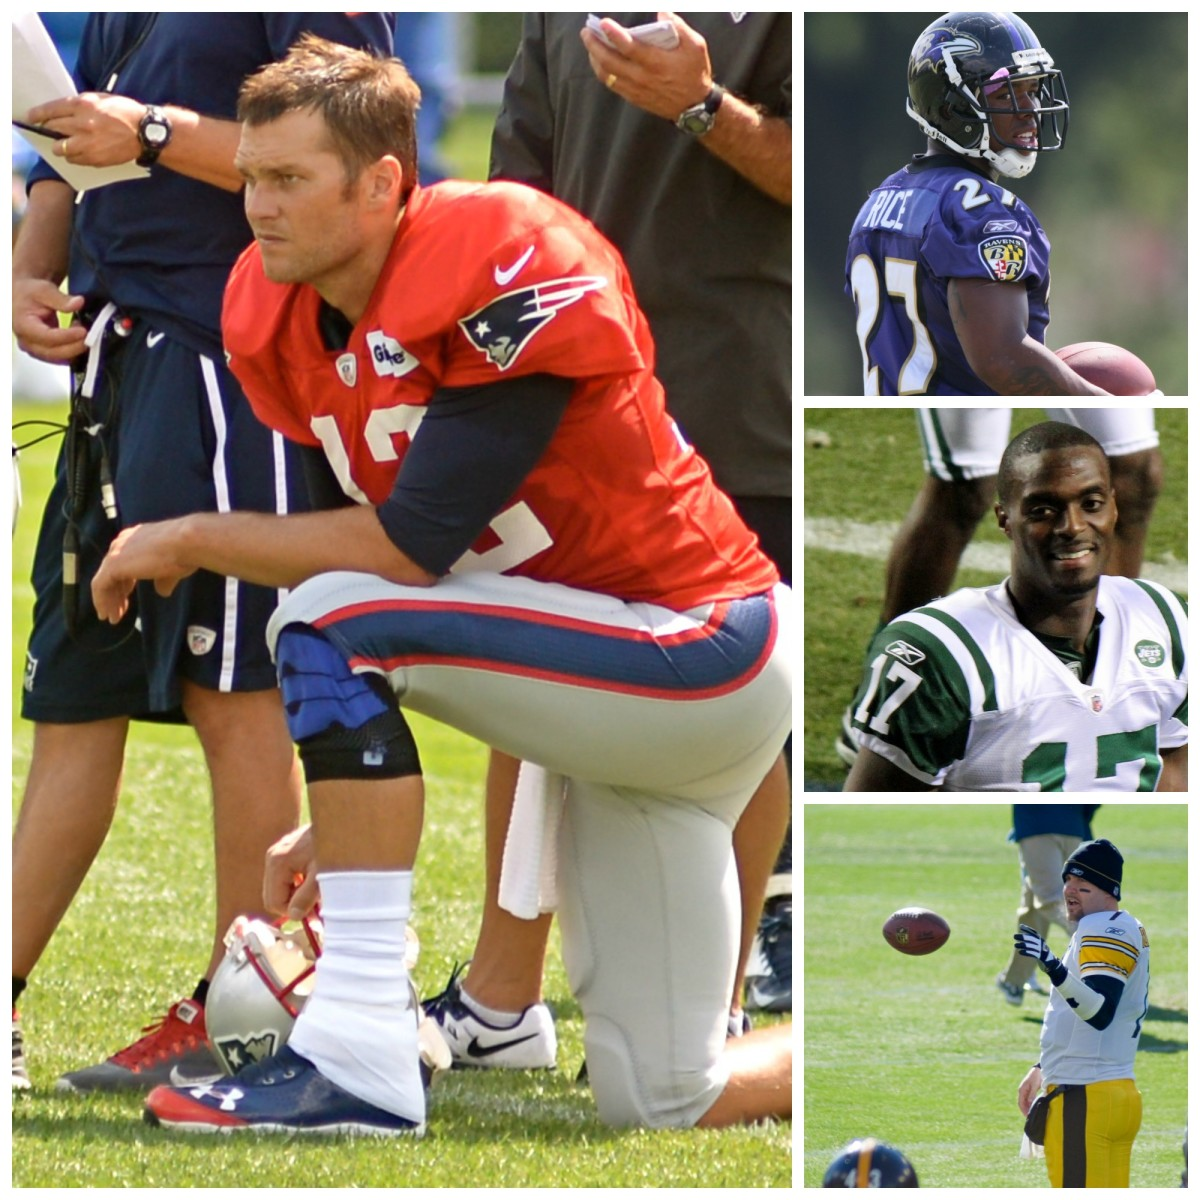 Clockwise, from left: Tom Brady (Photo: Beth Hart/Flickr); Ray Rice (Photo: Keith Allison/Flickr); Plaxico Burress (Photo: Jeffrey Beall/FLickr); and Ben Roethlisberger. (Photo: Andy McLemore/Flickr).